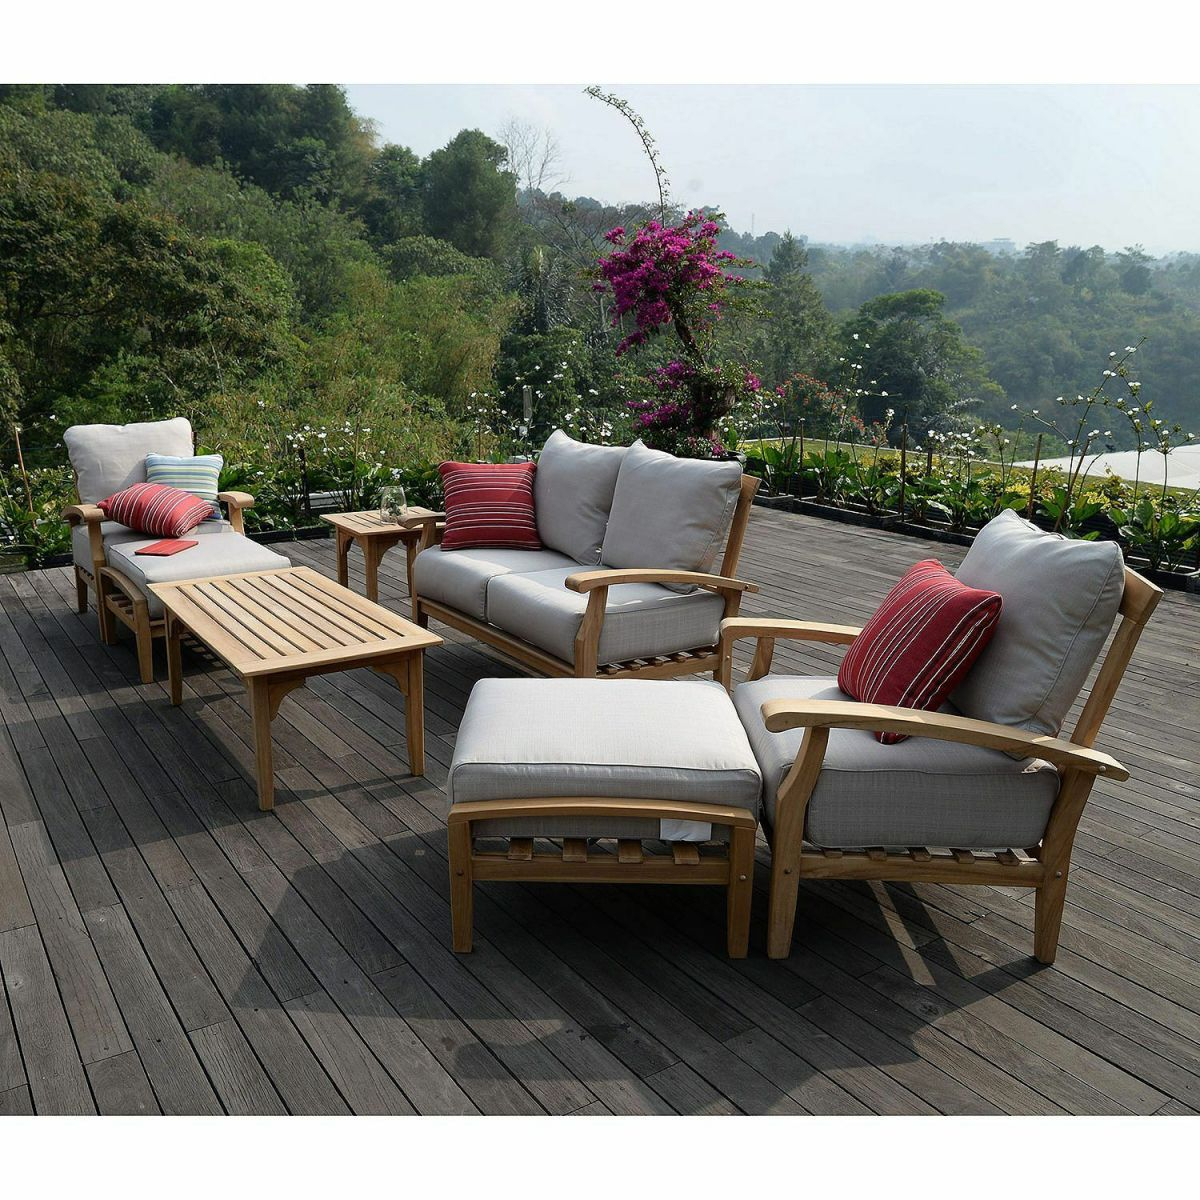 Teak Patio Furniture Outdoor 7 Pc Set Seating Beige Cushions Weather  Resistant for Teak Outdoor Furniture Set